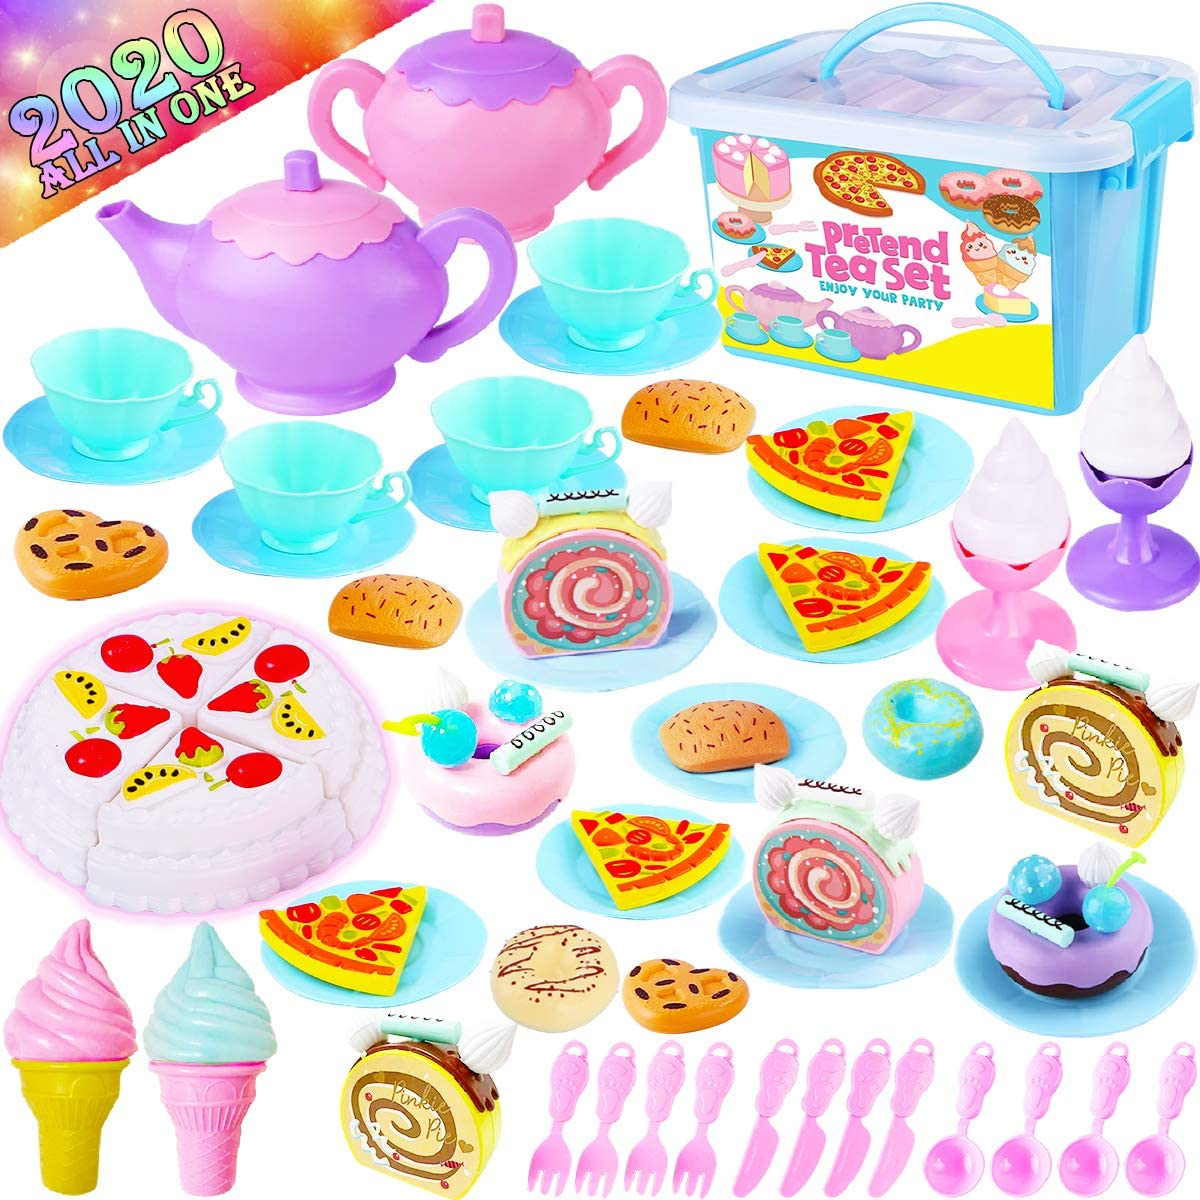 GraceDuck Tea Set for Little Girls - Pretend Play Kitchen Accessories Princess Party Tea Pot Plastic Food Cake Plate Cups Stuff Gifts Childs Baby Toddler Toys for Girl Boy Ages 3 4 5 6 7 8 9 Year Old